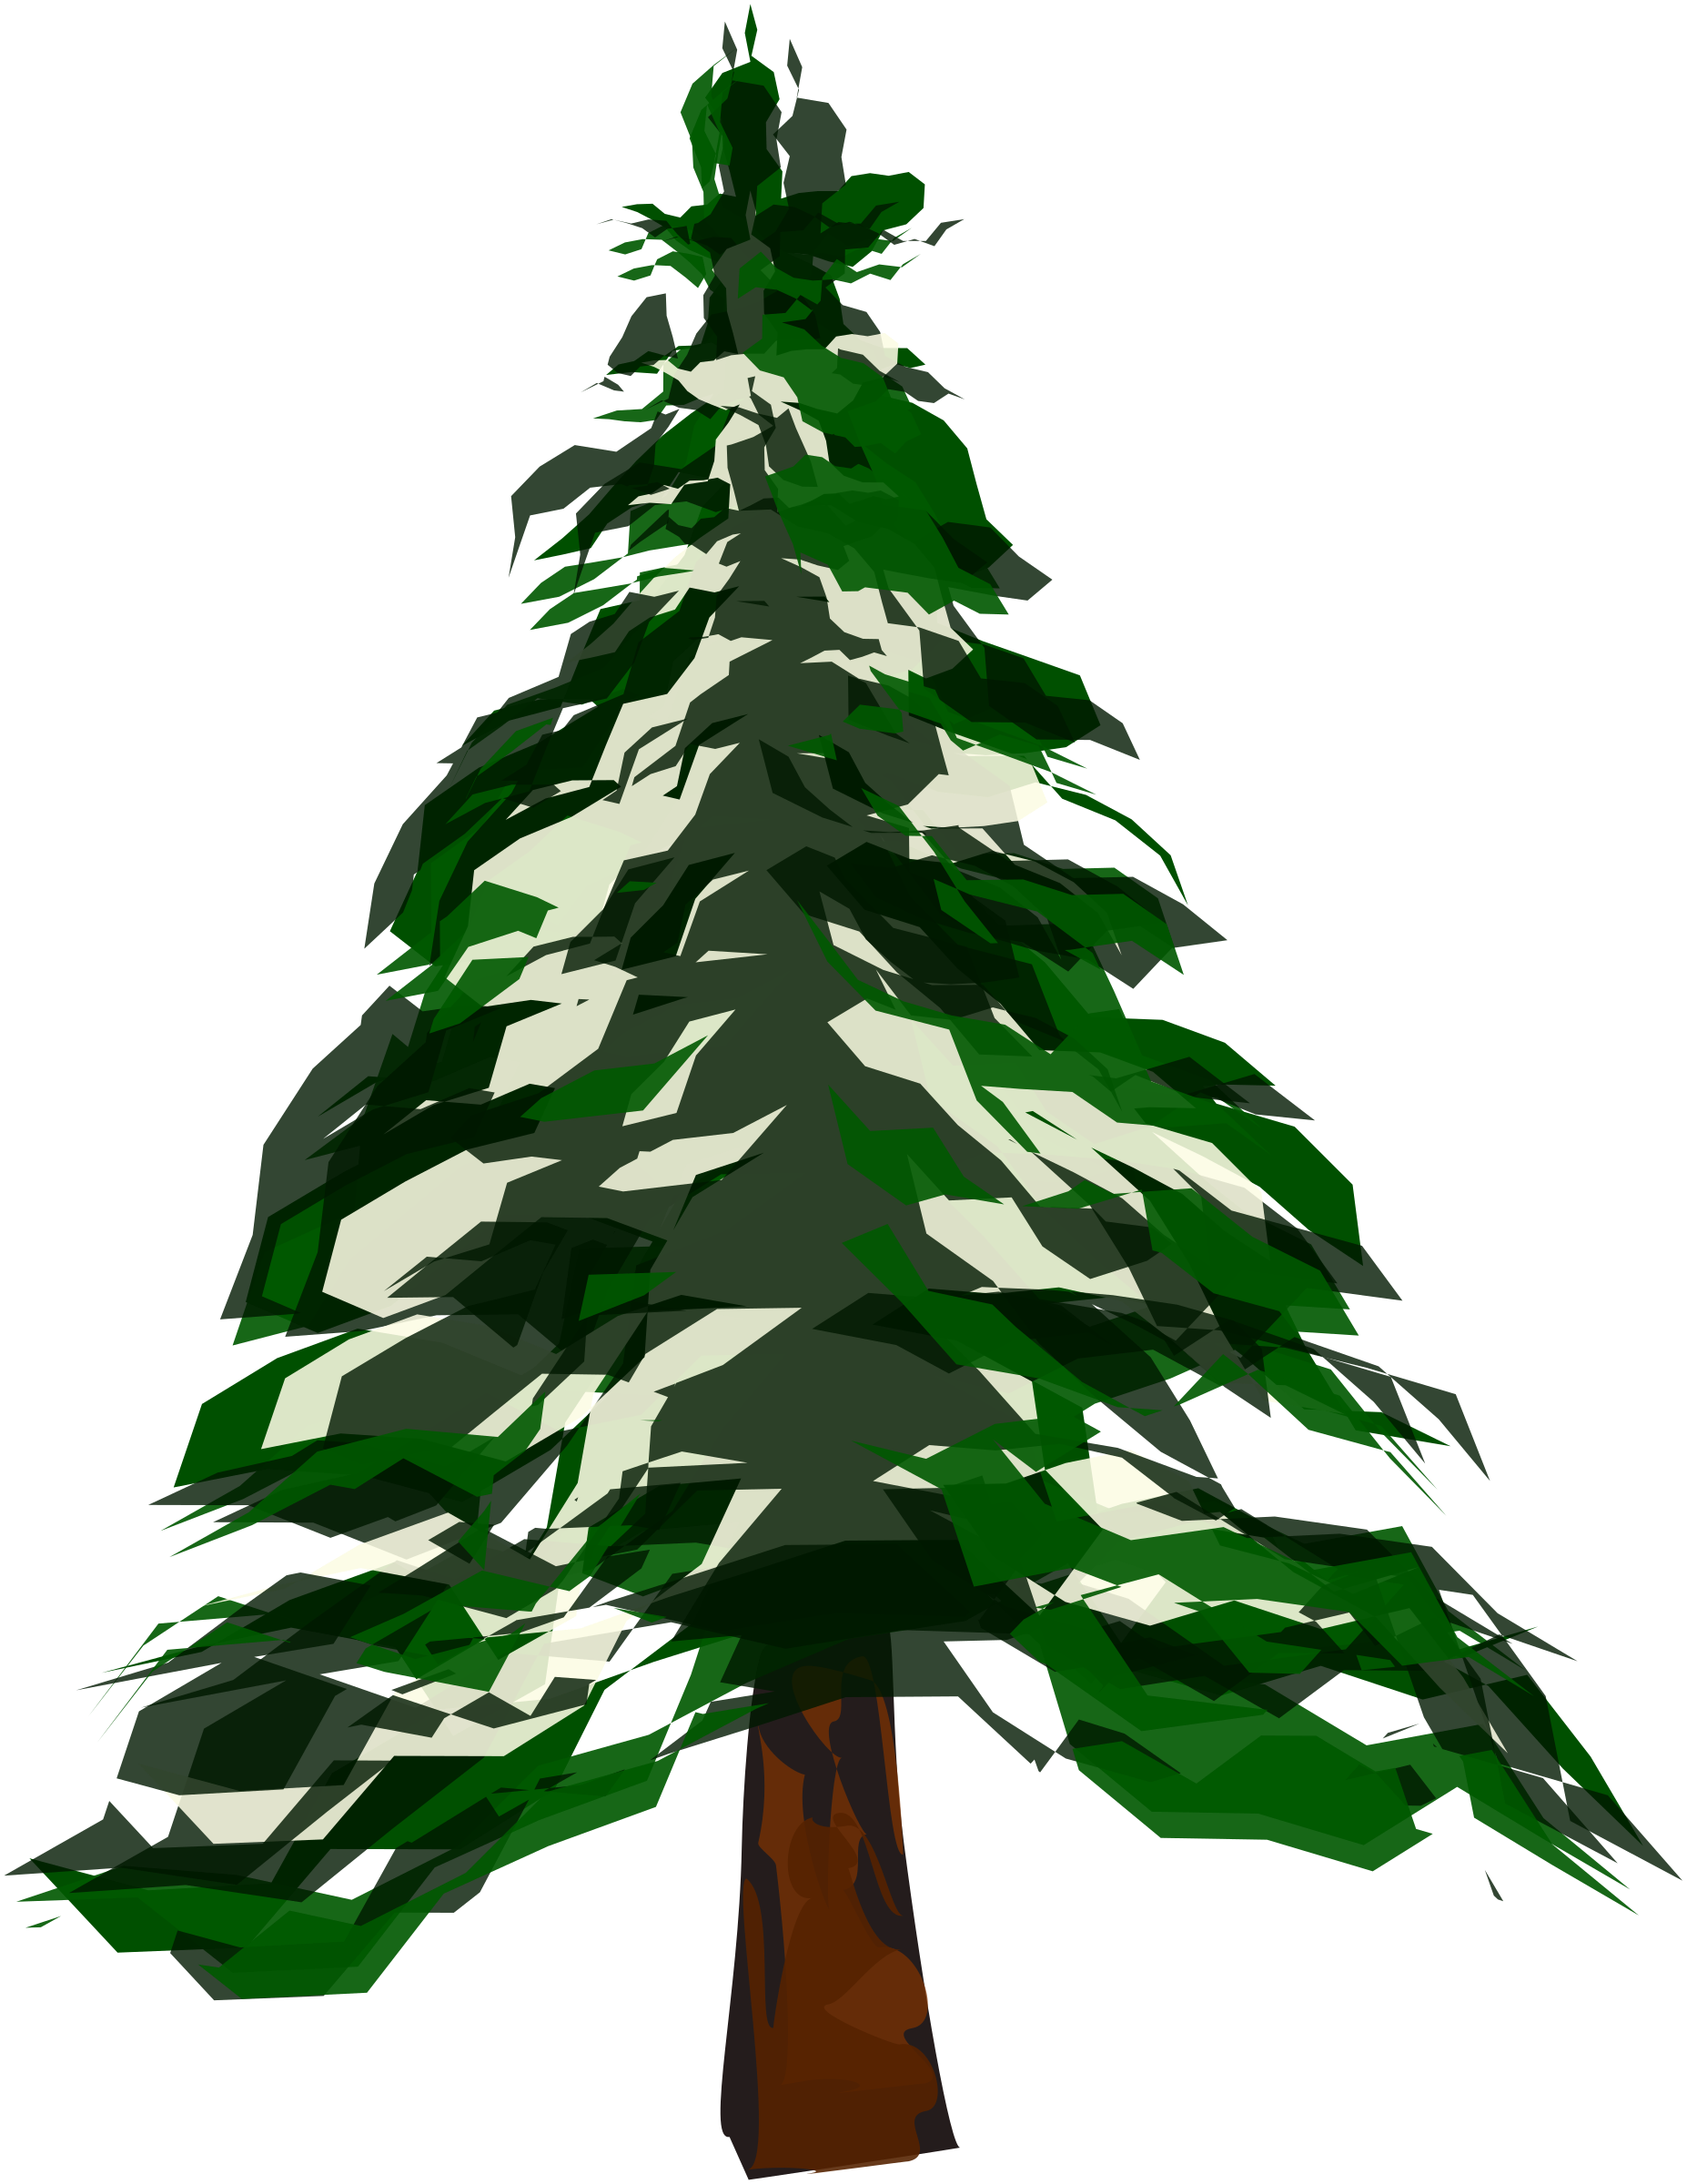 Evergreen tree with snow clipart image free download Clipart - Winter Tree 1 image free download